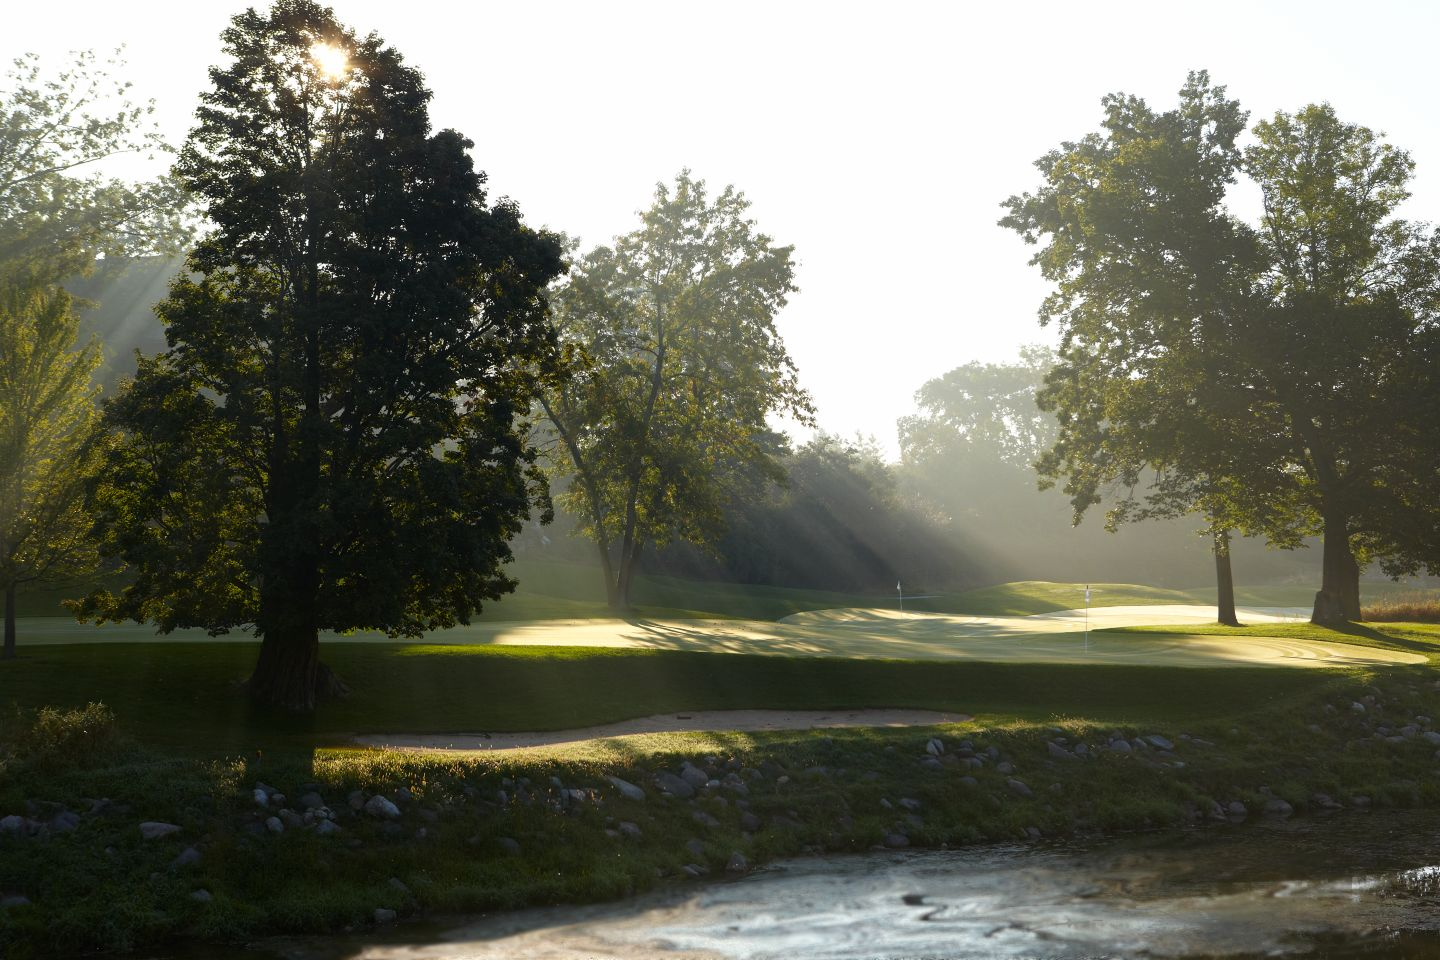 The green of hole 18 of the Meadow Valleys course with sunlight shining through trees on the left.